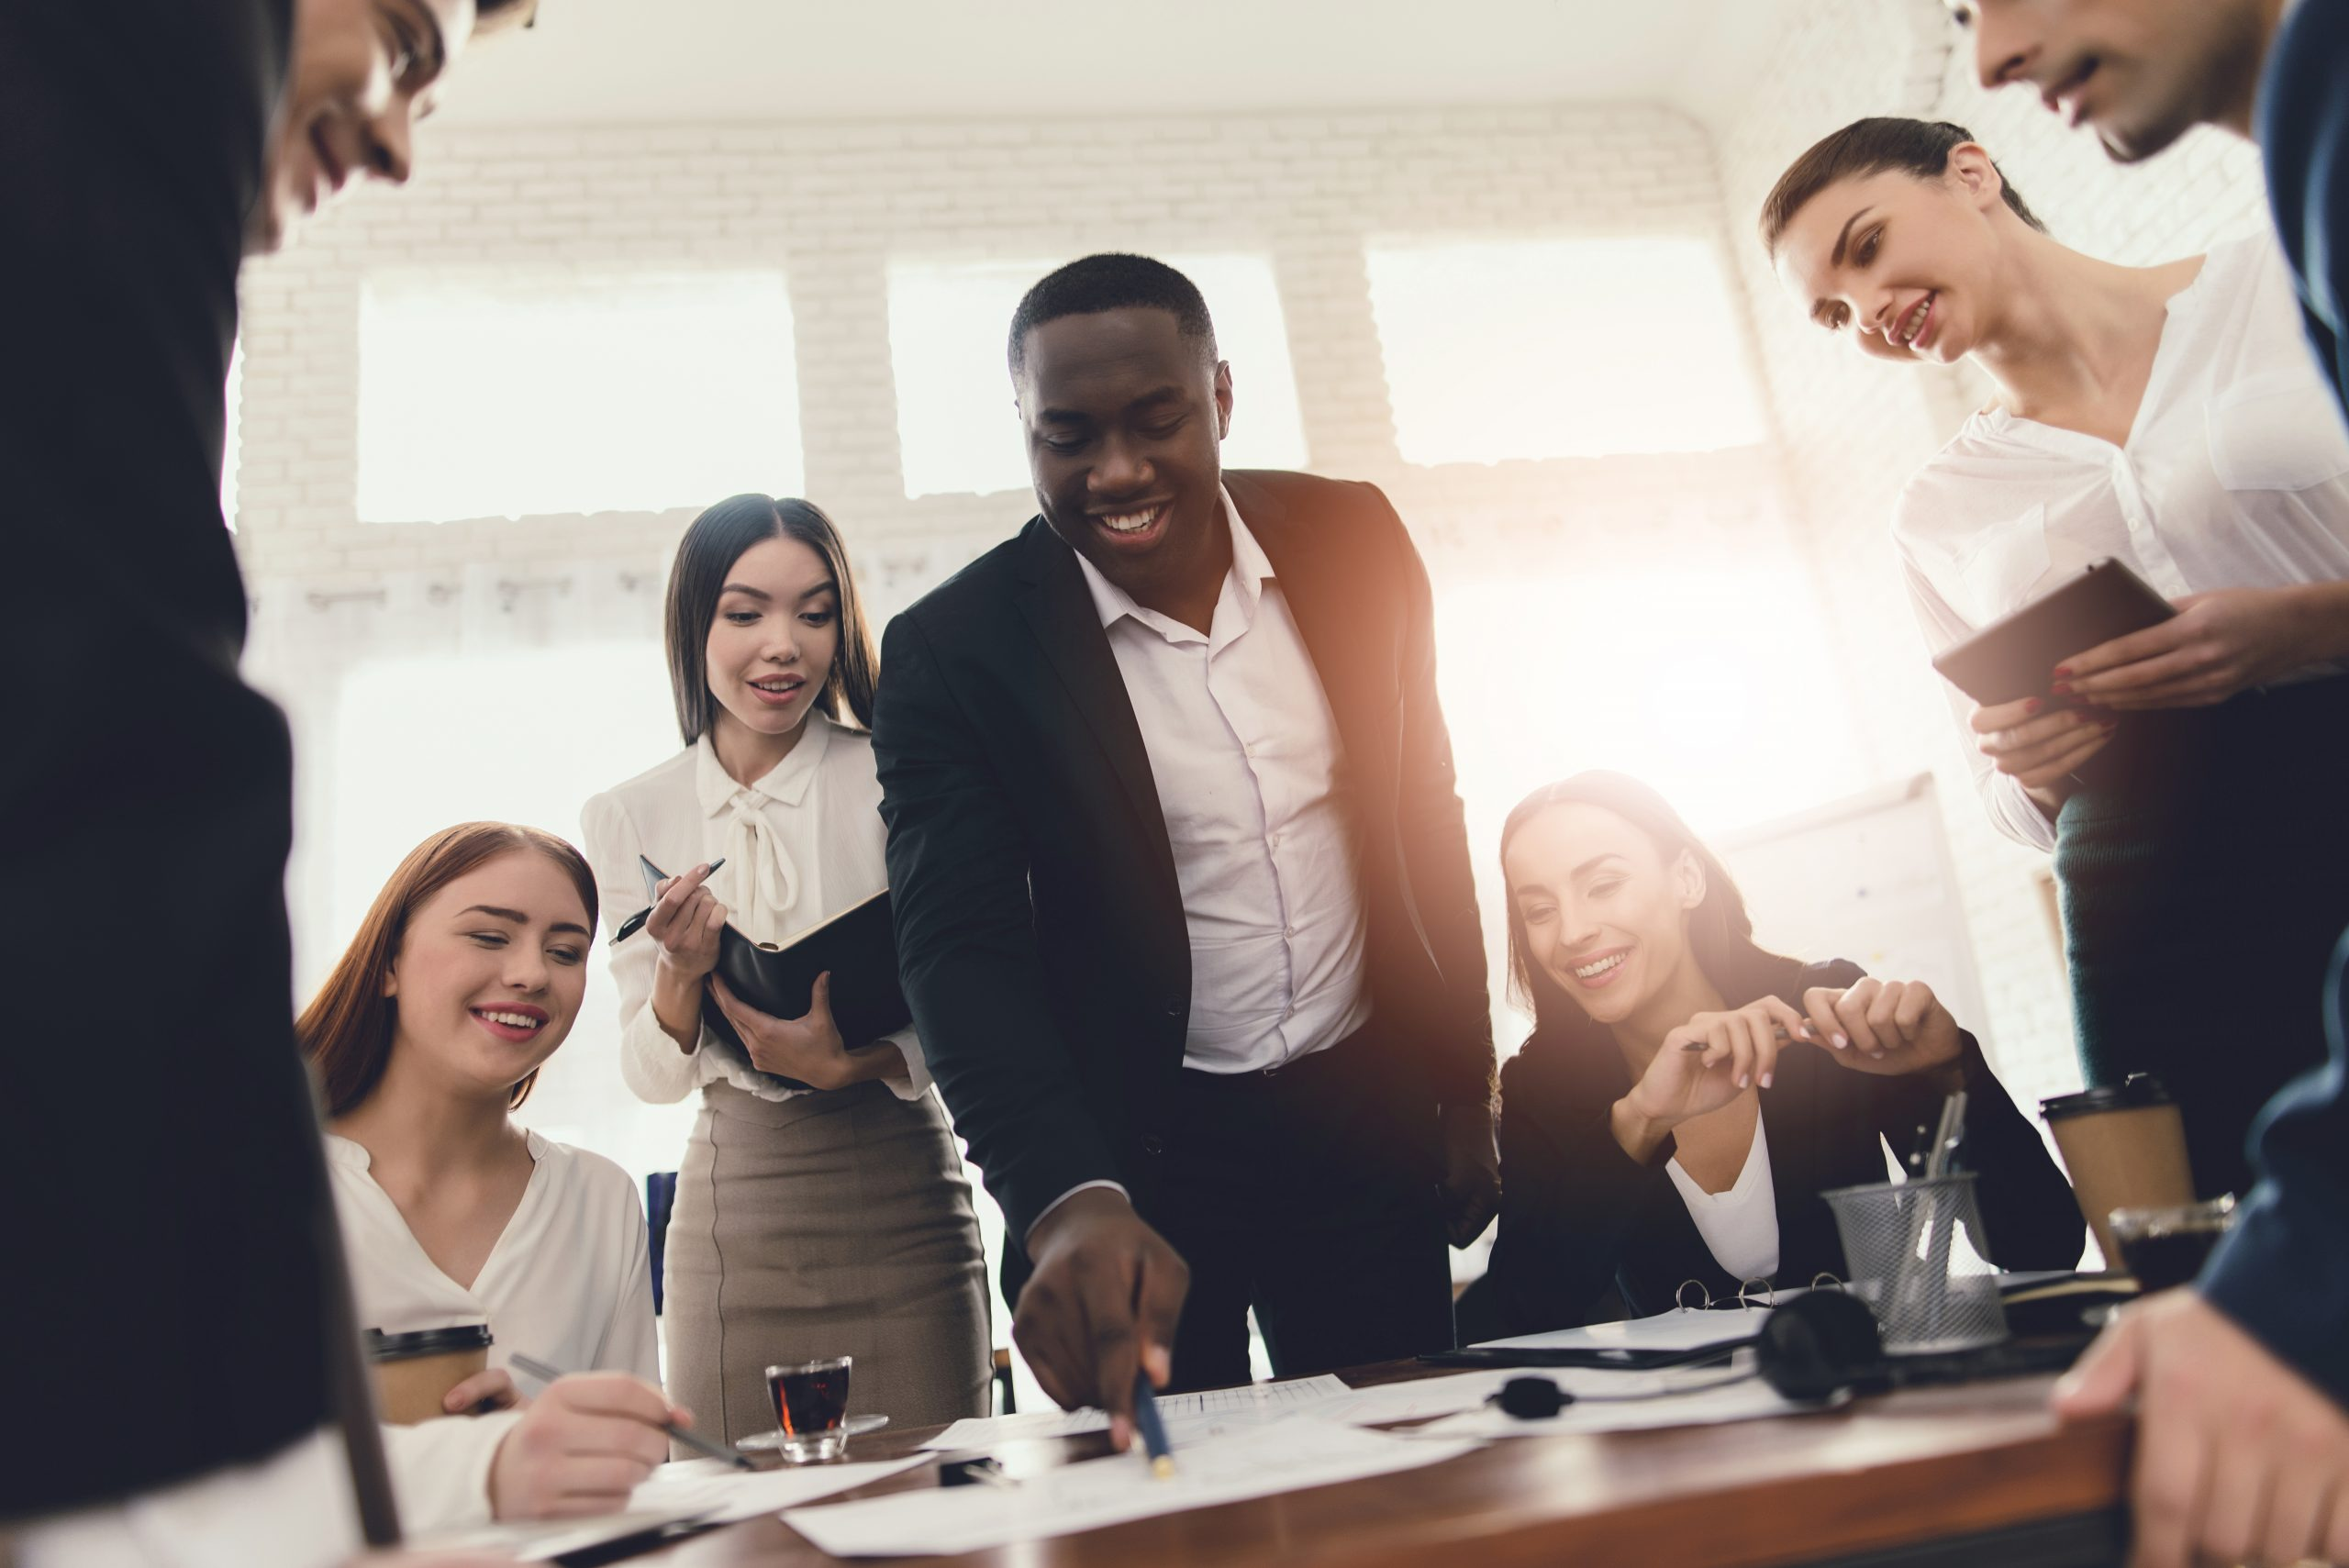 Diversity and Inclusion across Leadership